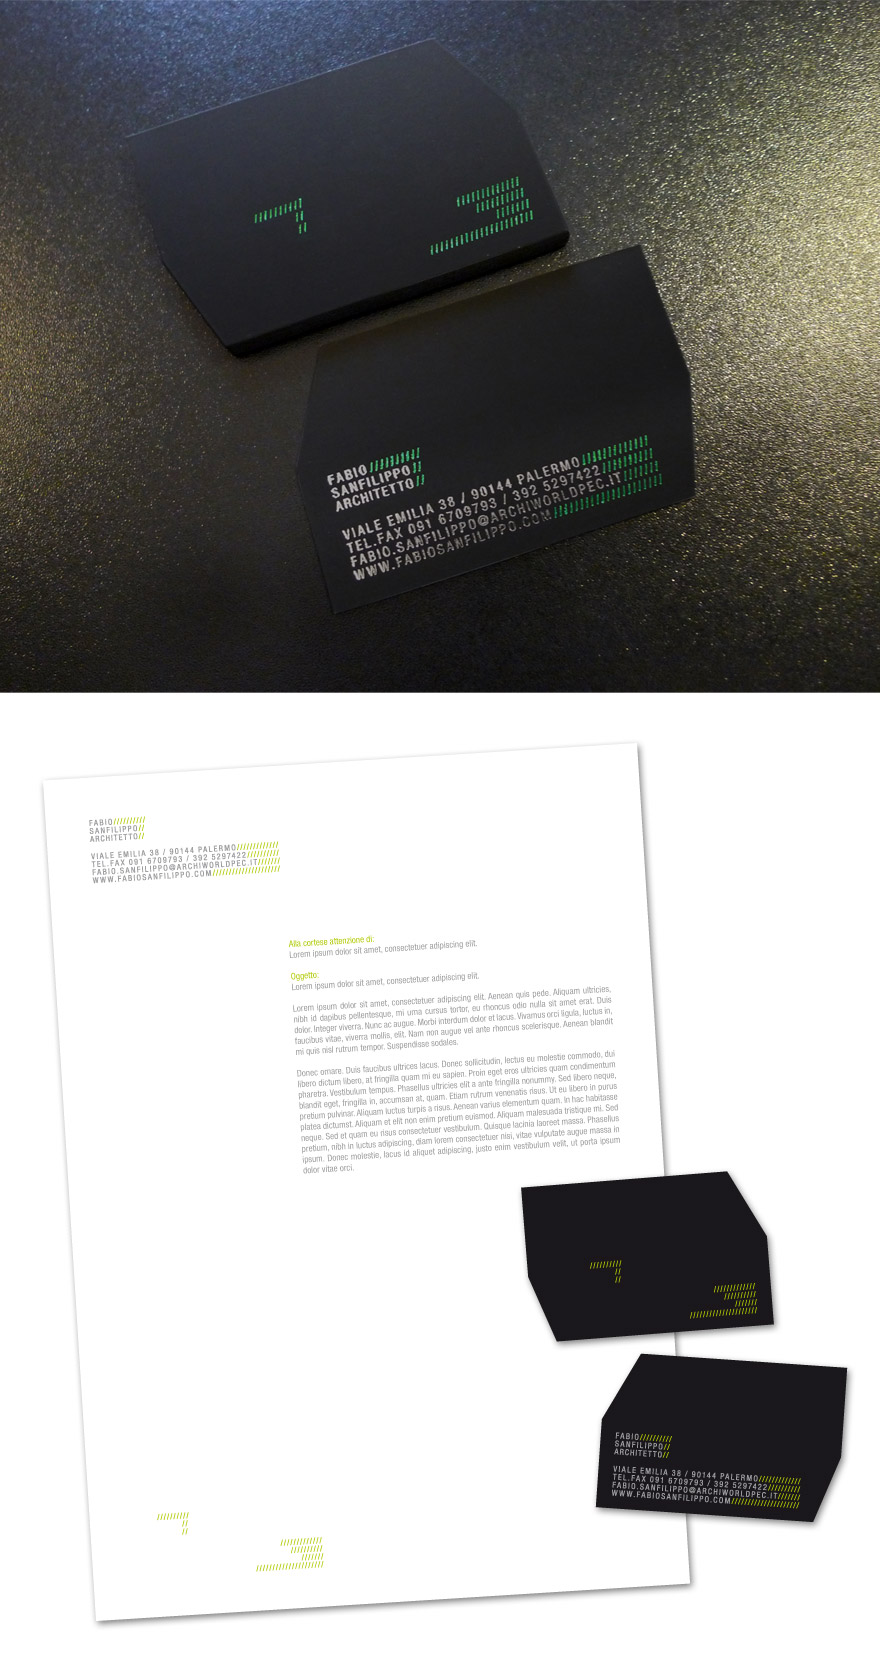 35 Architect Business Card Designs For Inspiration - Creatives Wall